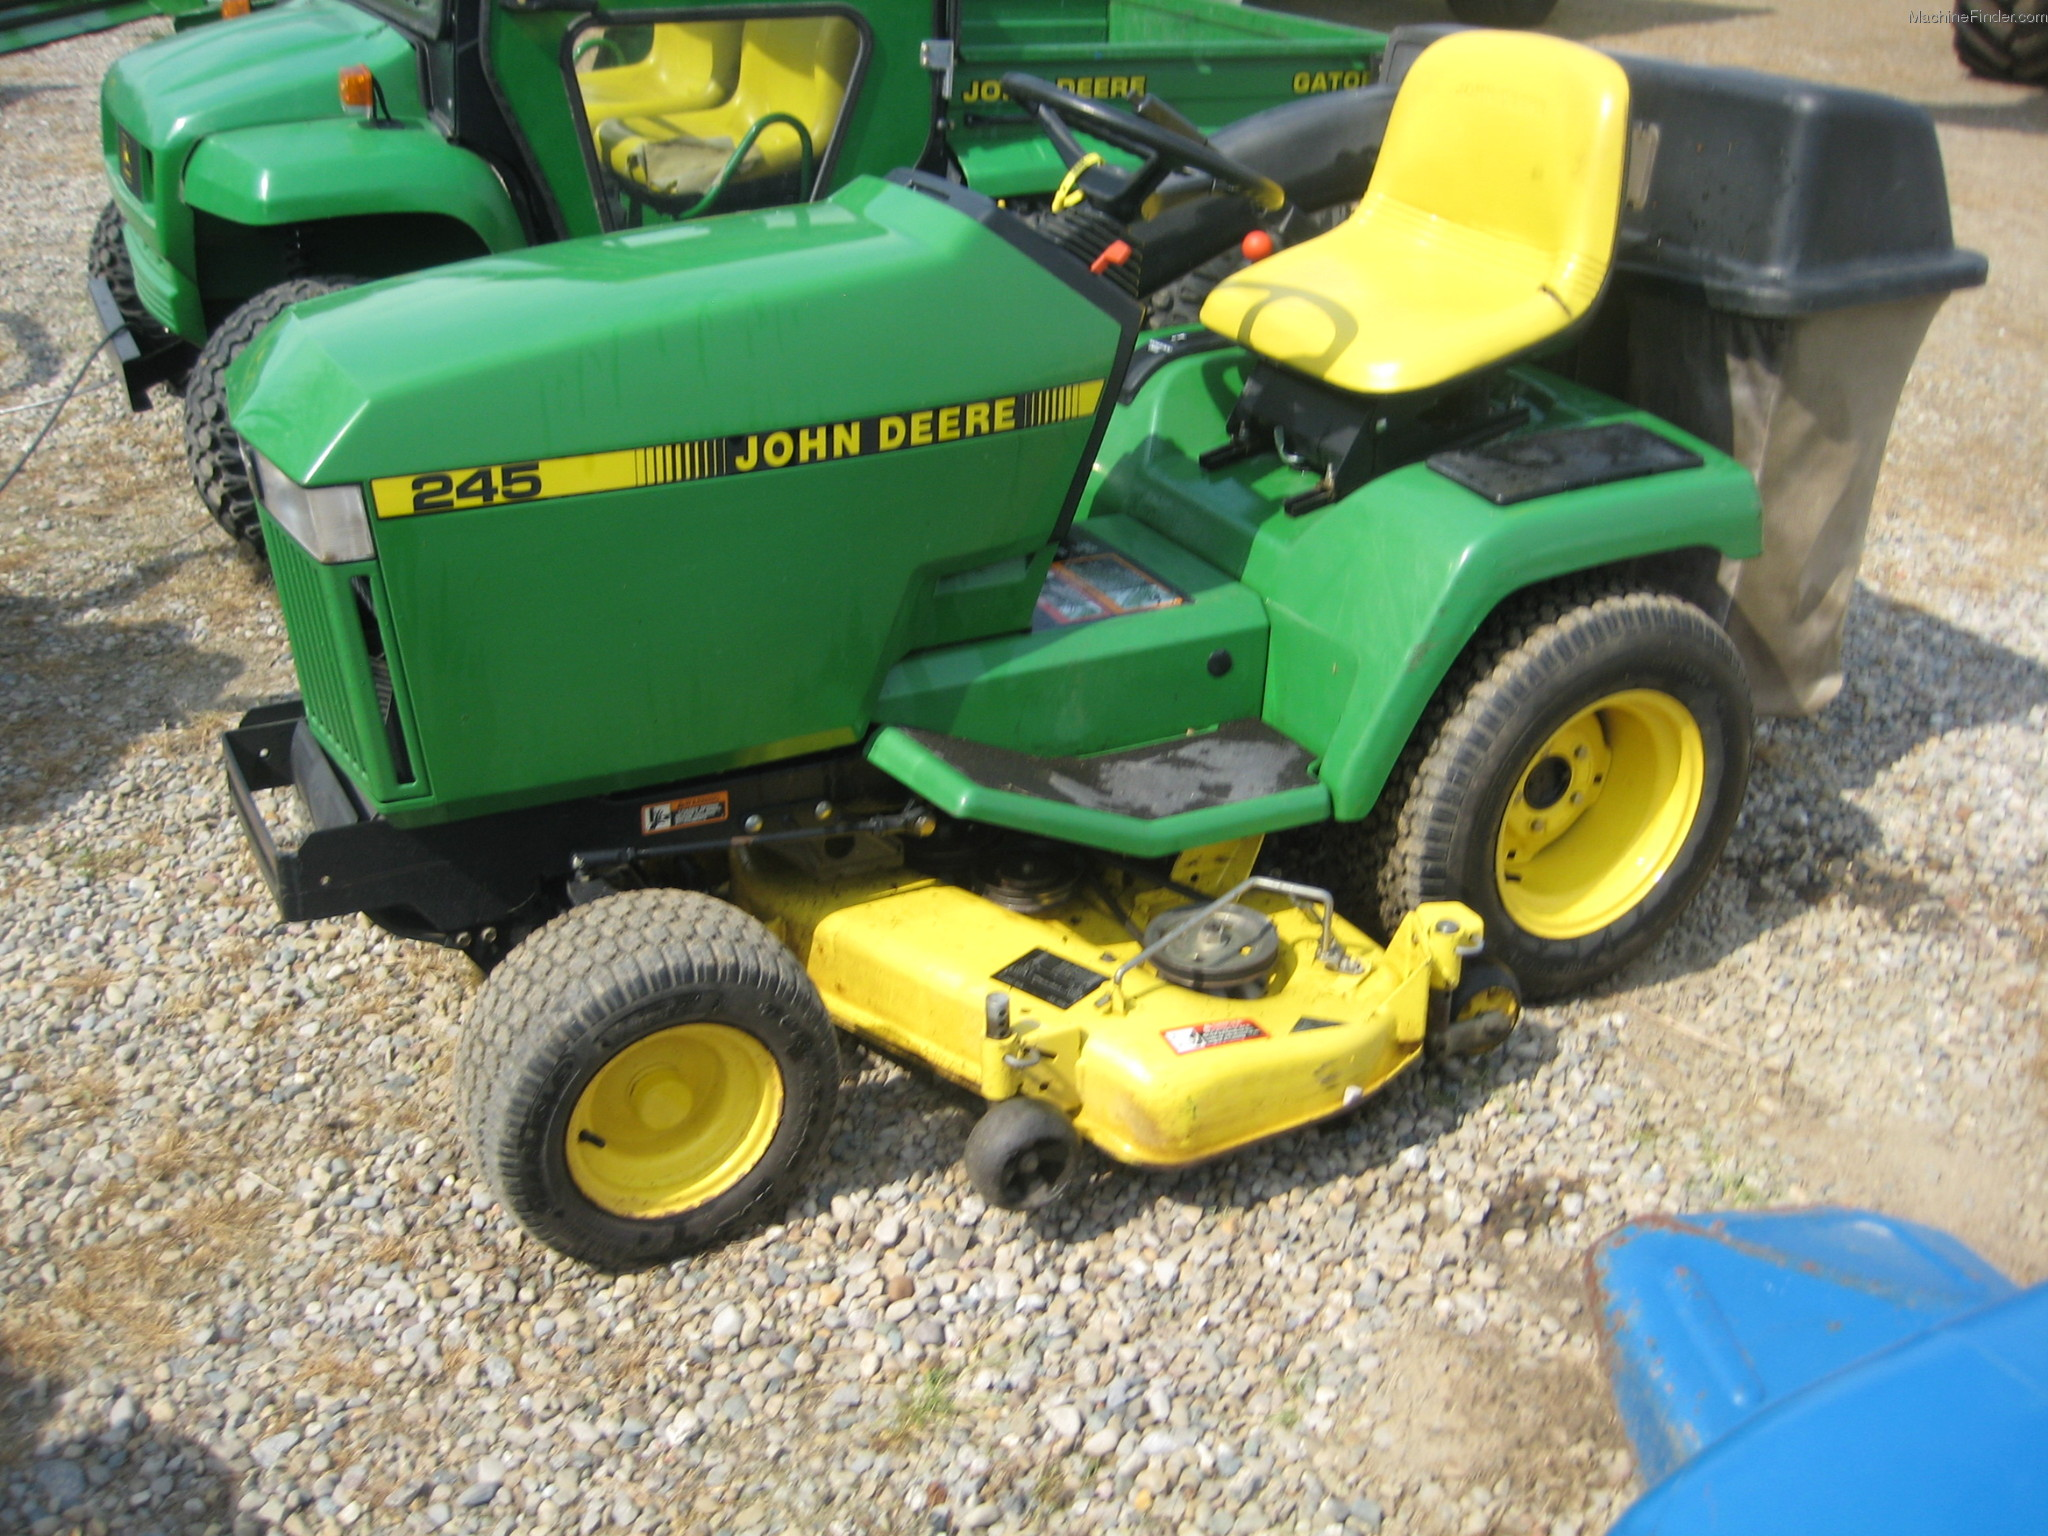 1994 John Deere 245 Lawn & Garden and Commercial Mowing ...